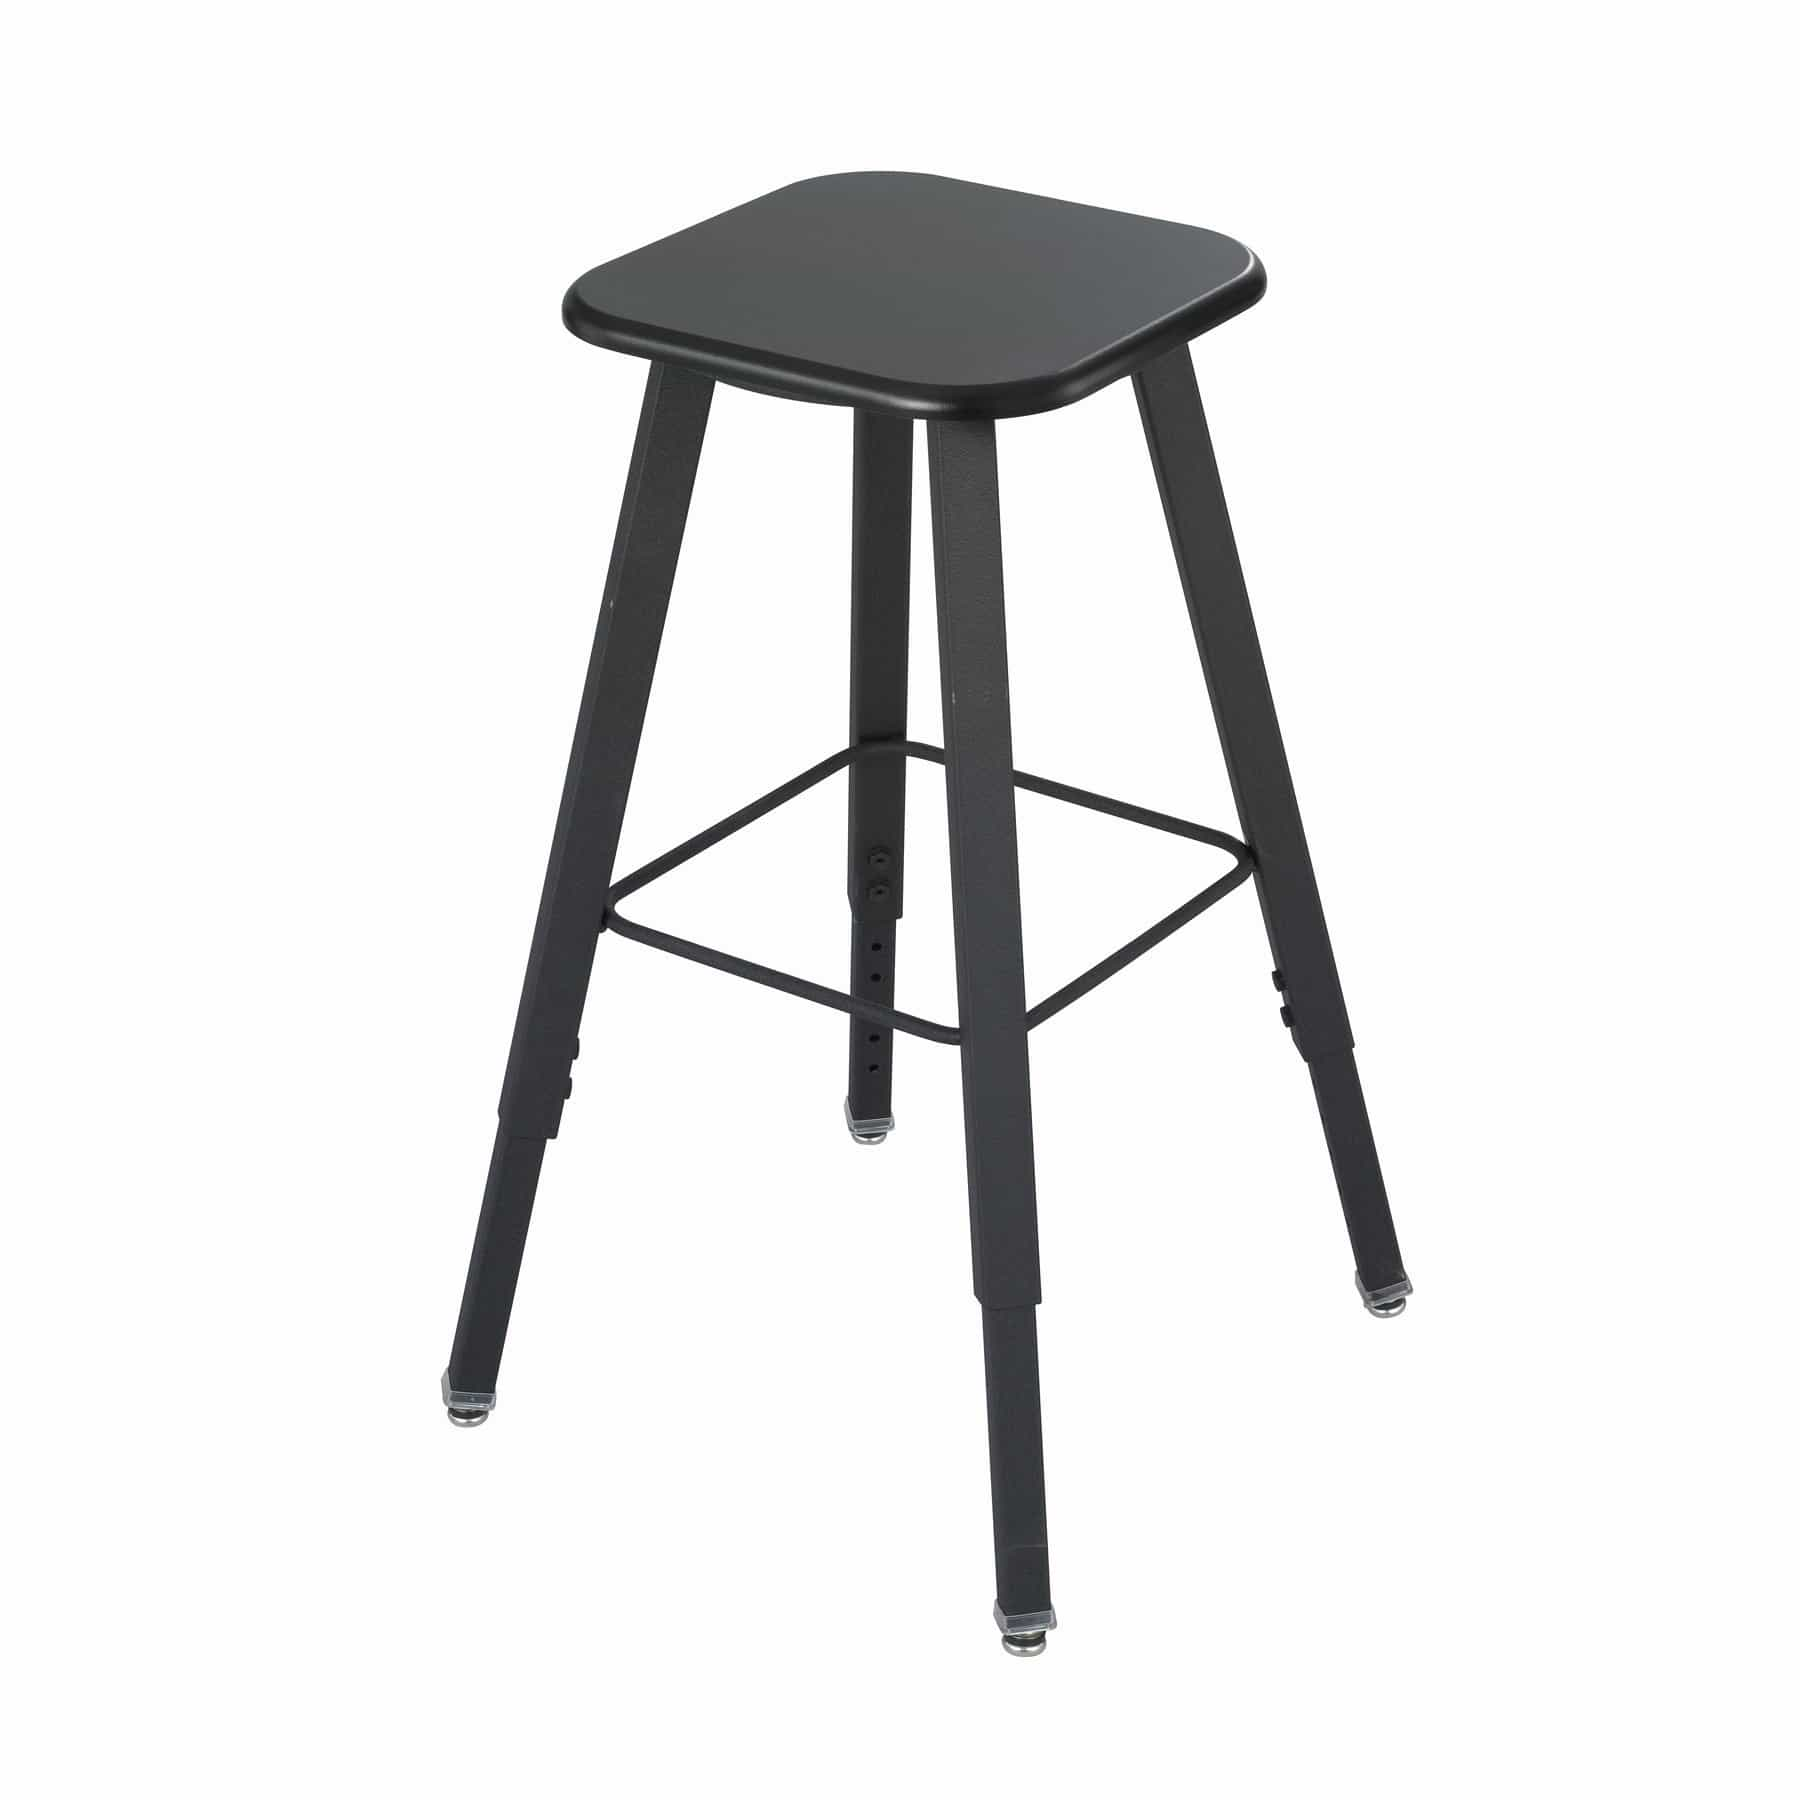 bedinhome - 1205BE AlphaBetter® 13 In x 13 In Thermoplastic Beige Seat & Black Frame Adjustable-Height Student Stool with Tip-Resistant Base - Safco - Educational Furniture